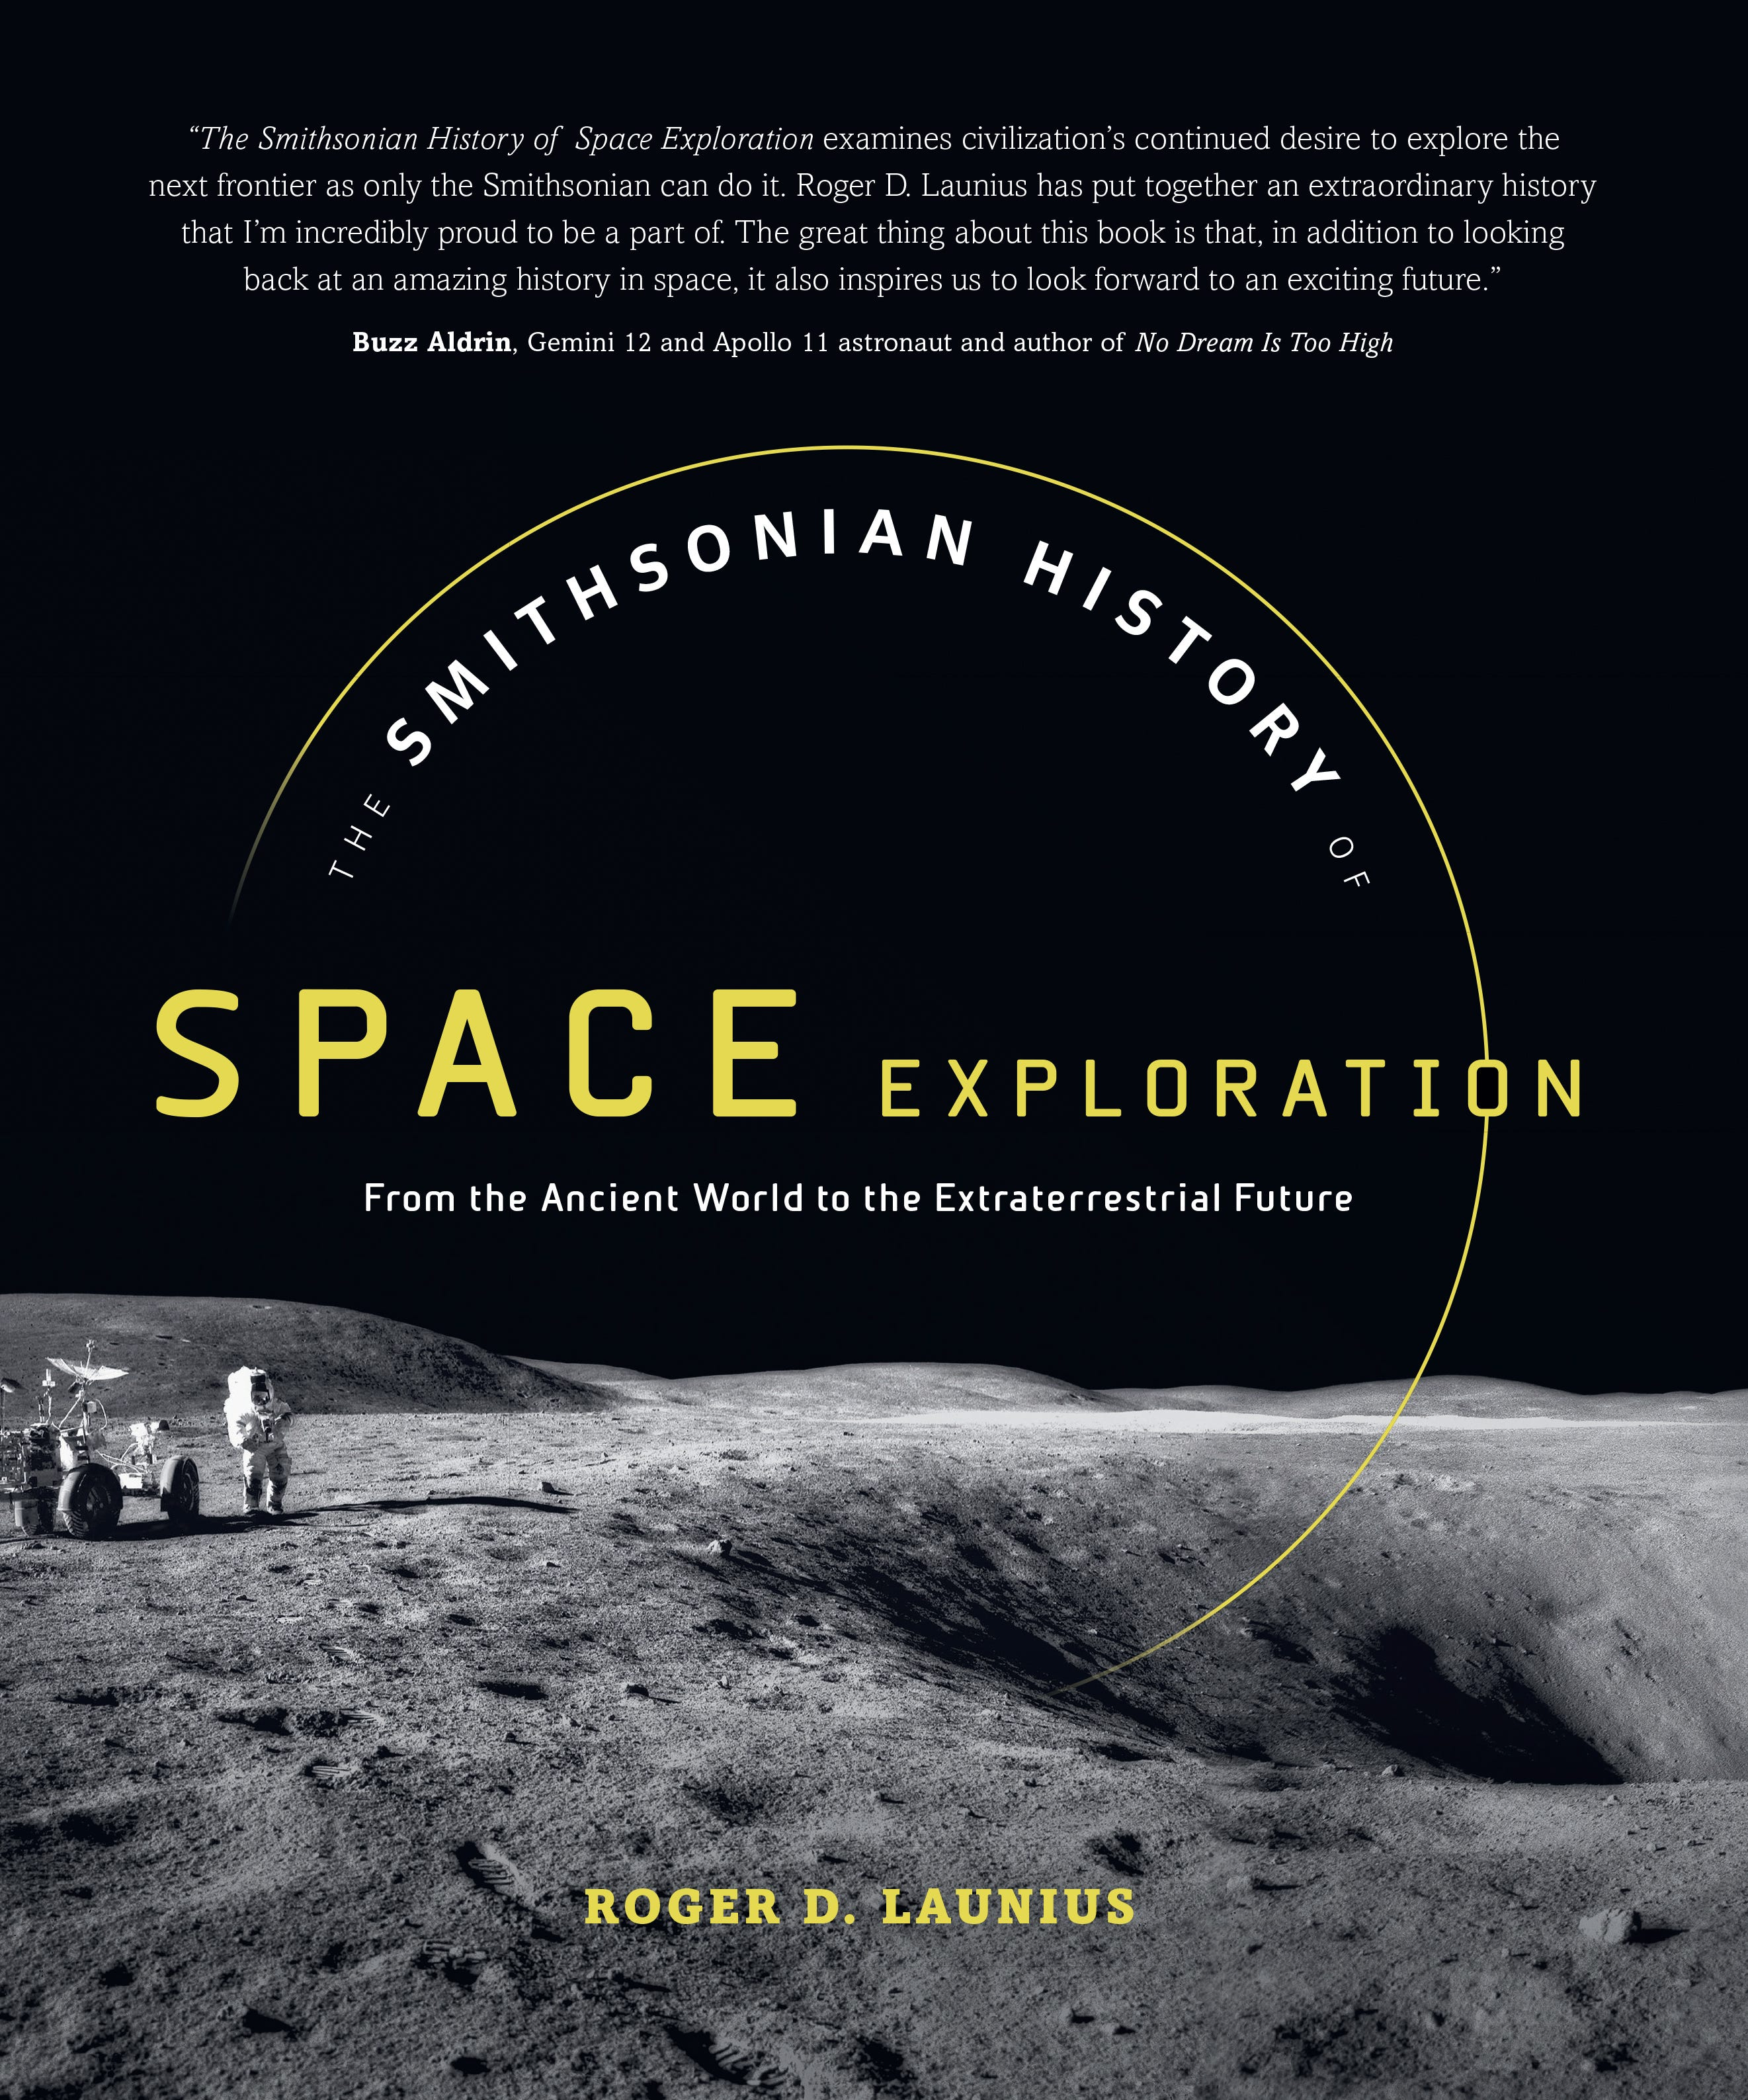 """""""The Smithsonian History of Space Exploration: From the Ancient World to the Extraterrestrial Future"""" was released Oct. 23."""